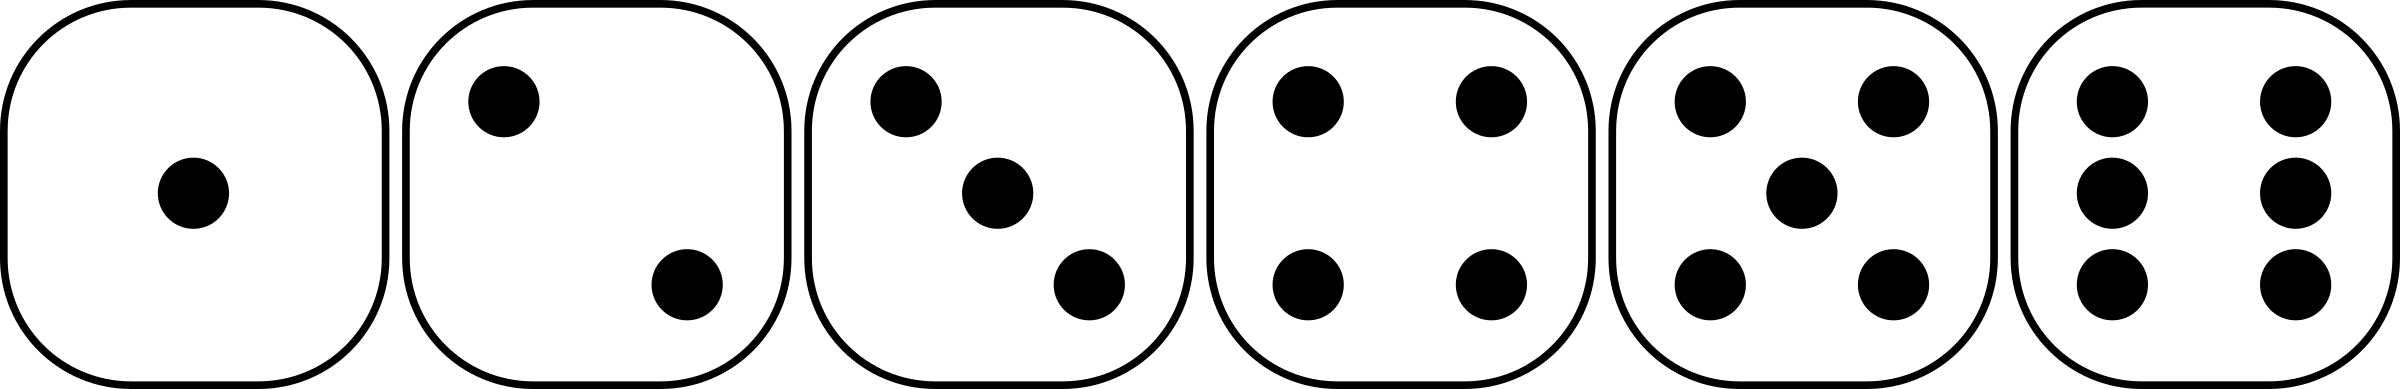 Dice faces png. Clipart sixsided lio